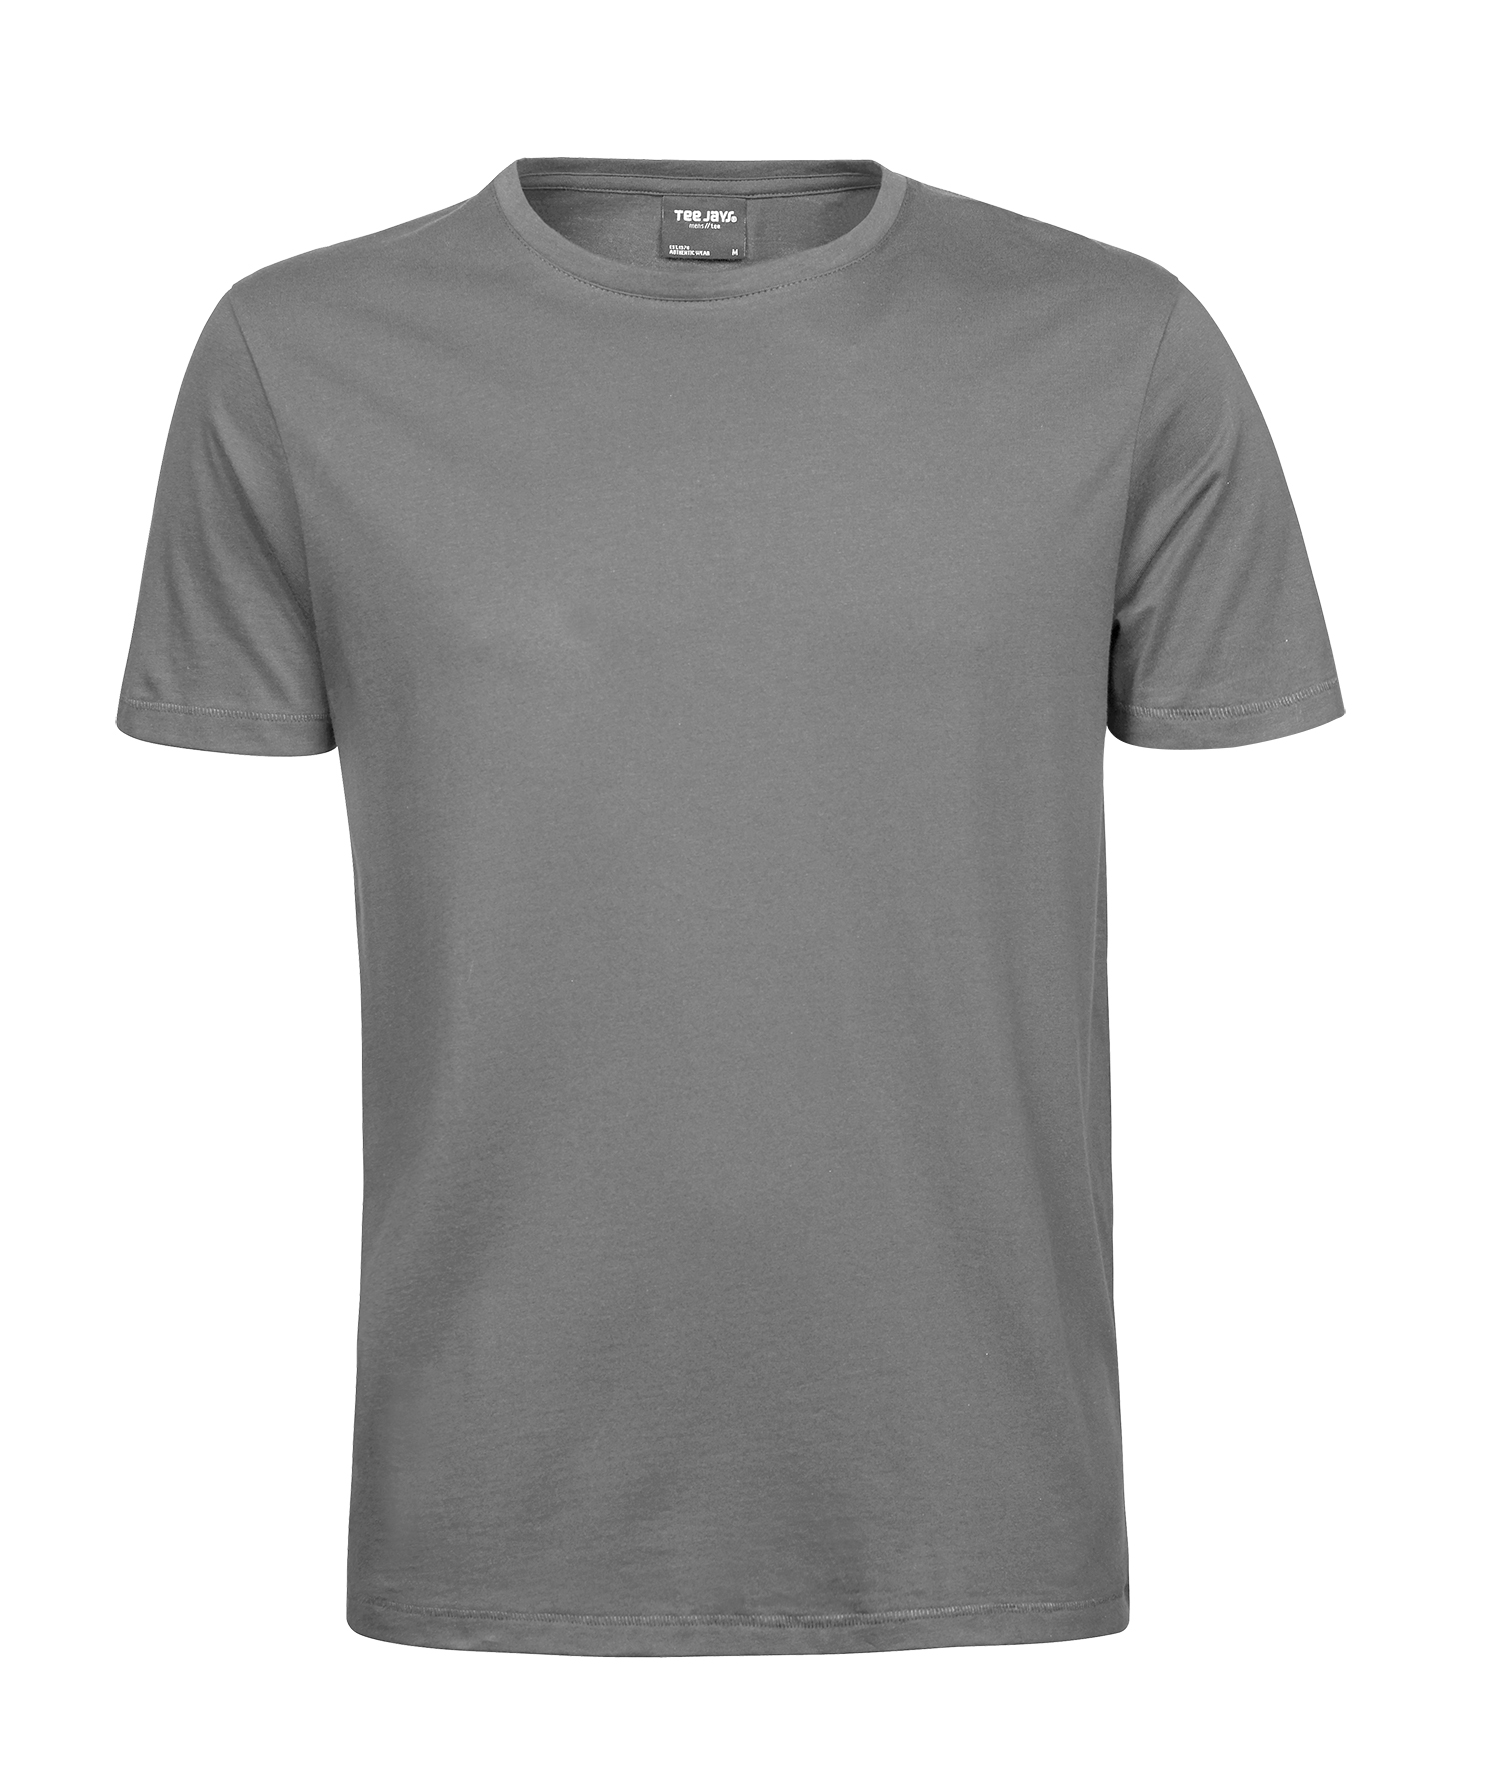 2844f6325 Create a T-shirt design and prepare it for print - 99designs Blog